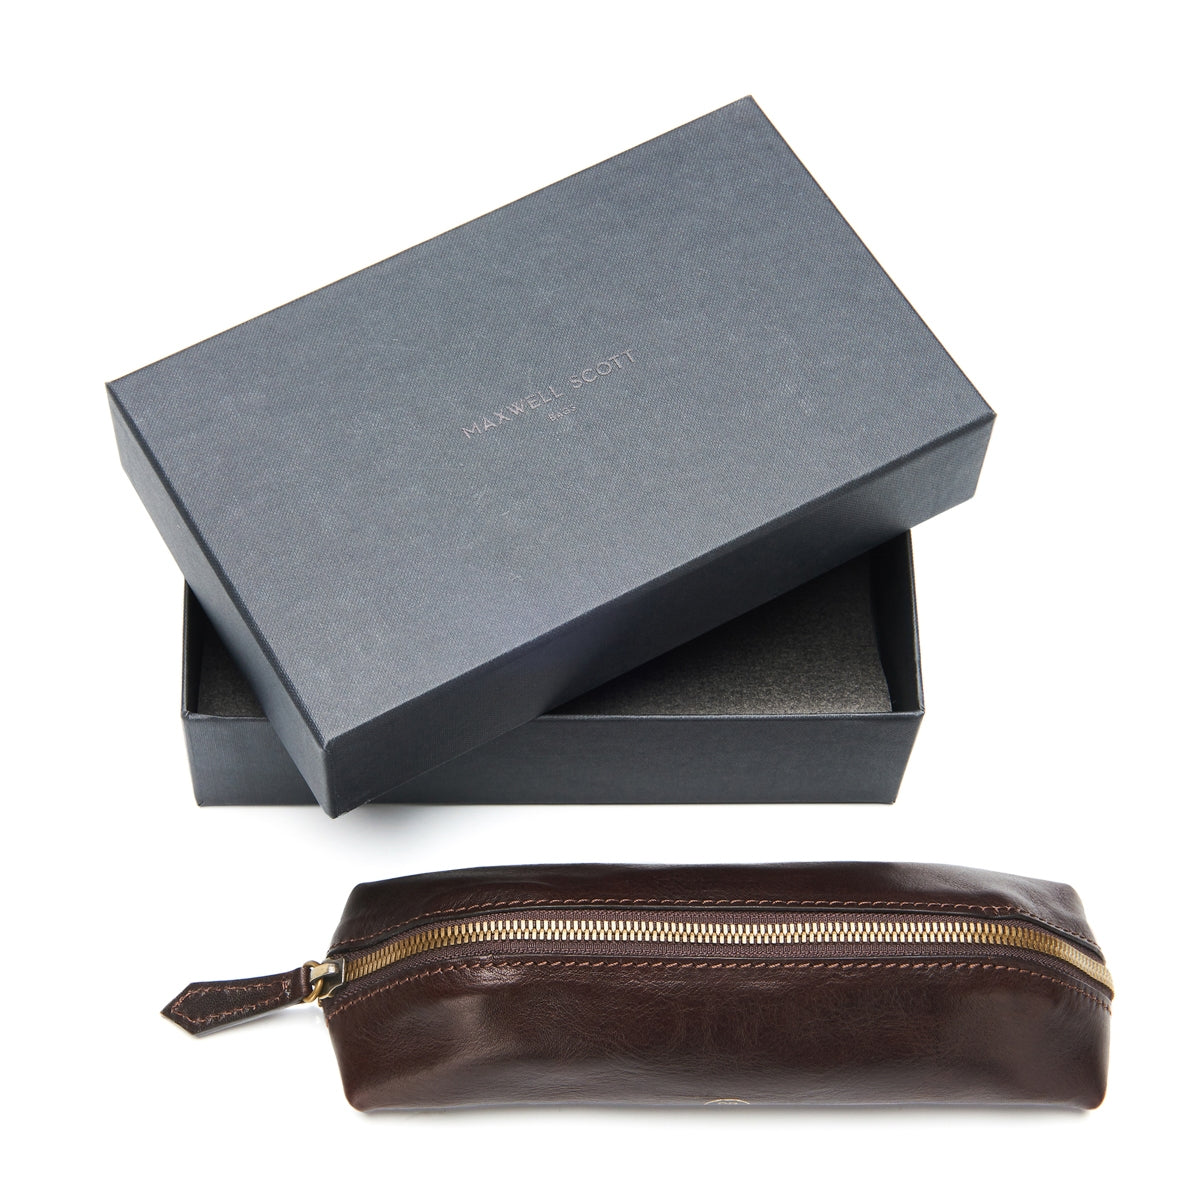 Image 6 of the 'Felice' Dark Chocolate Veg-Tanned Leather Pencil Case